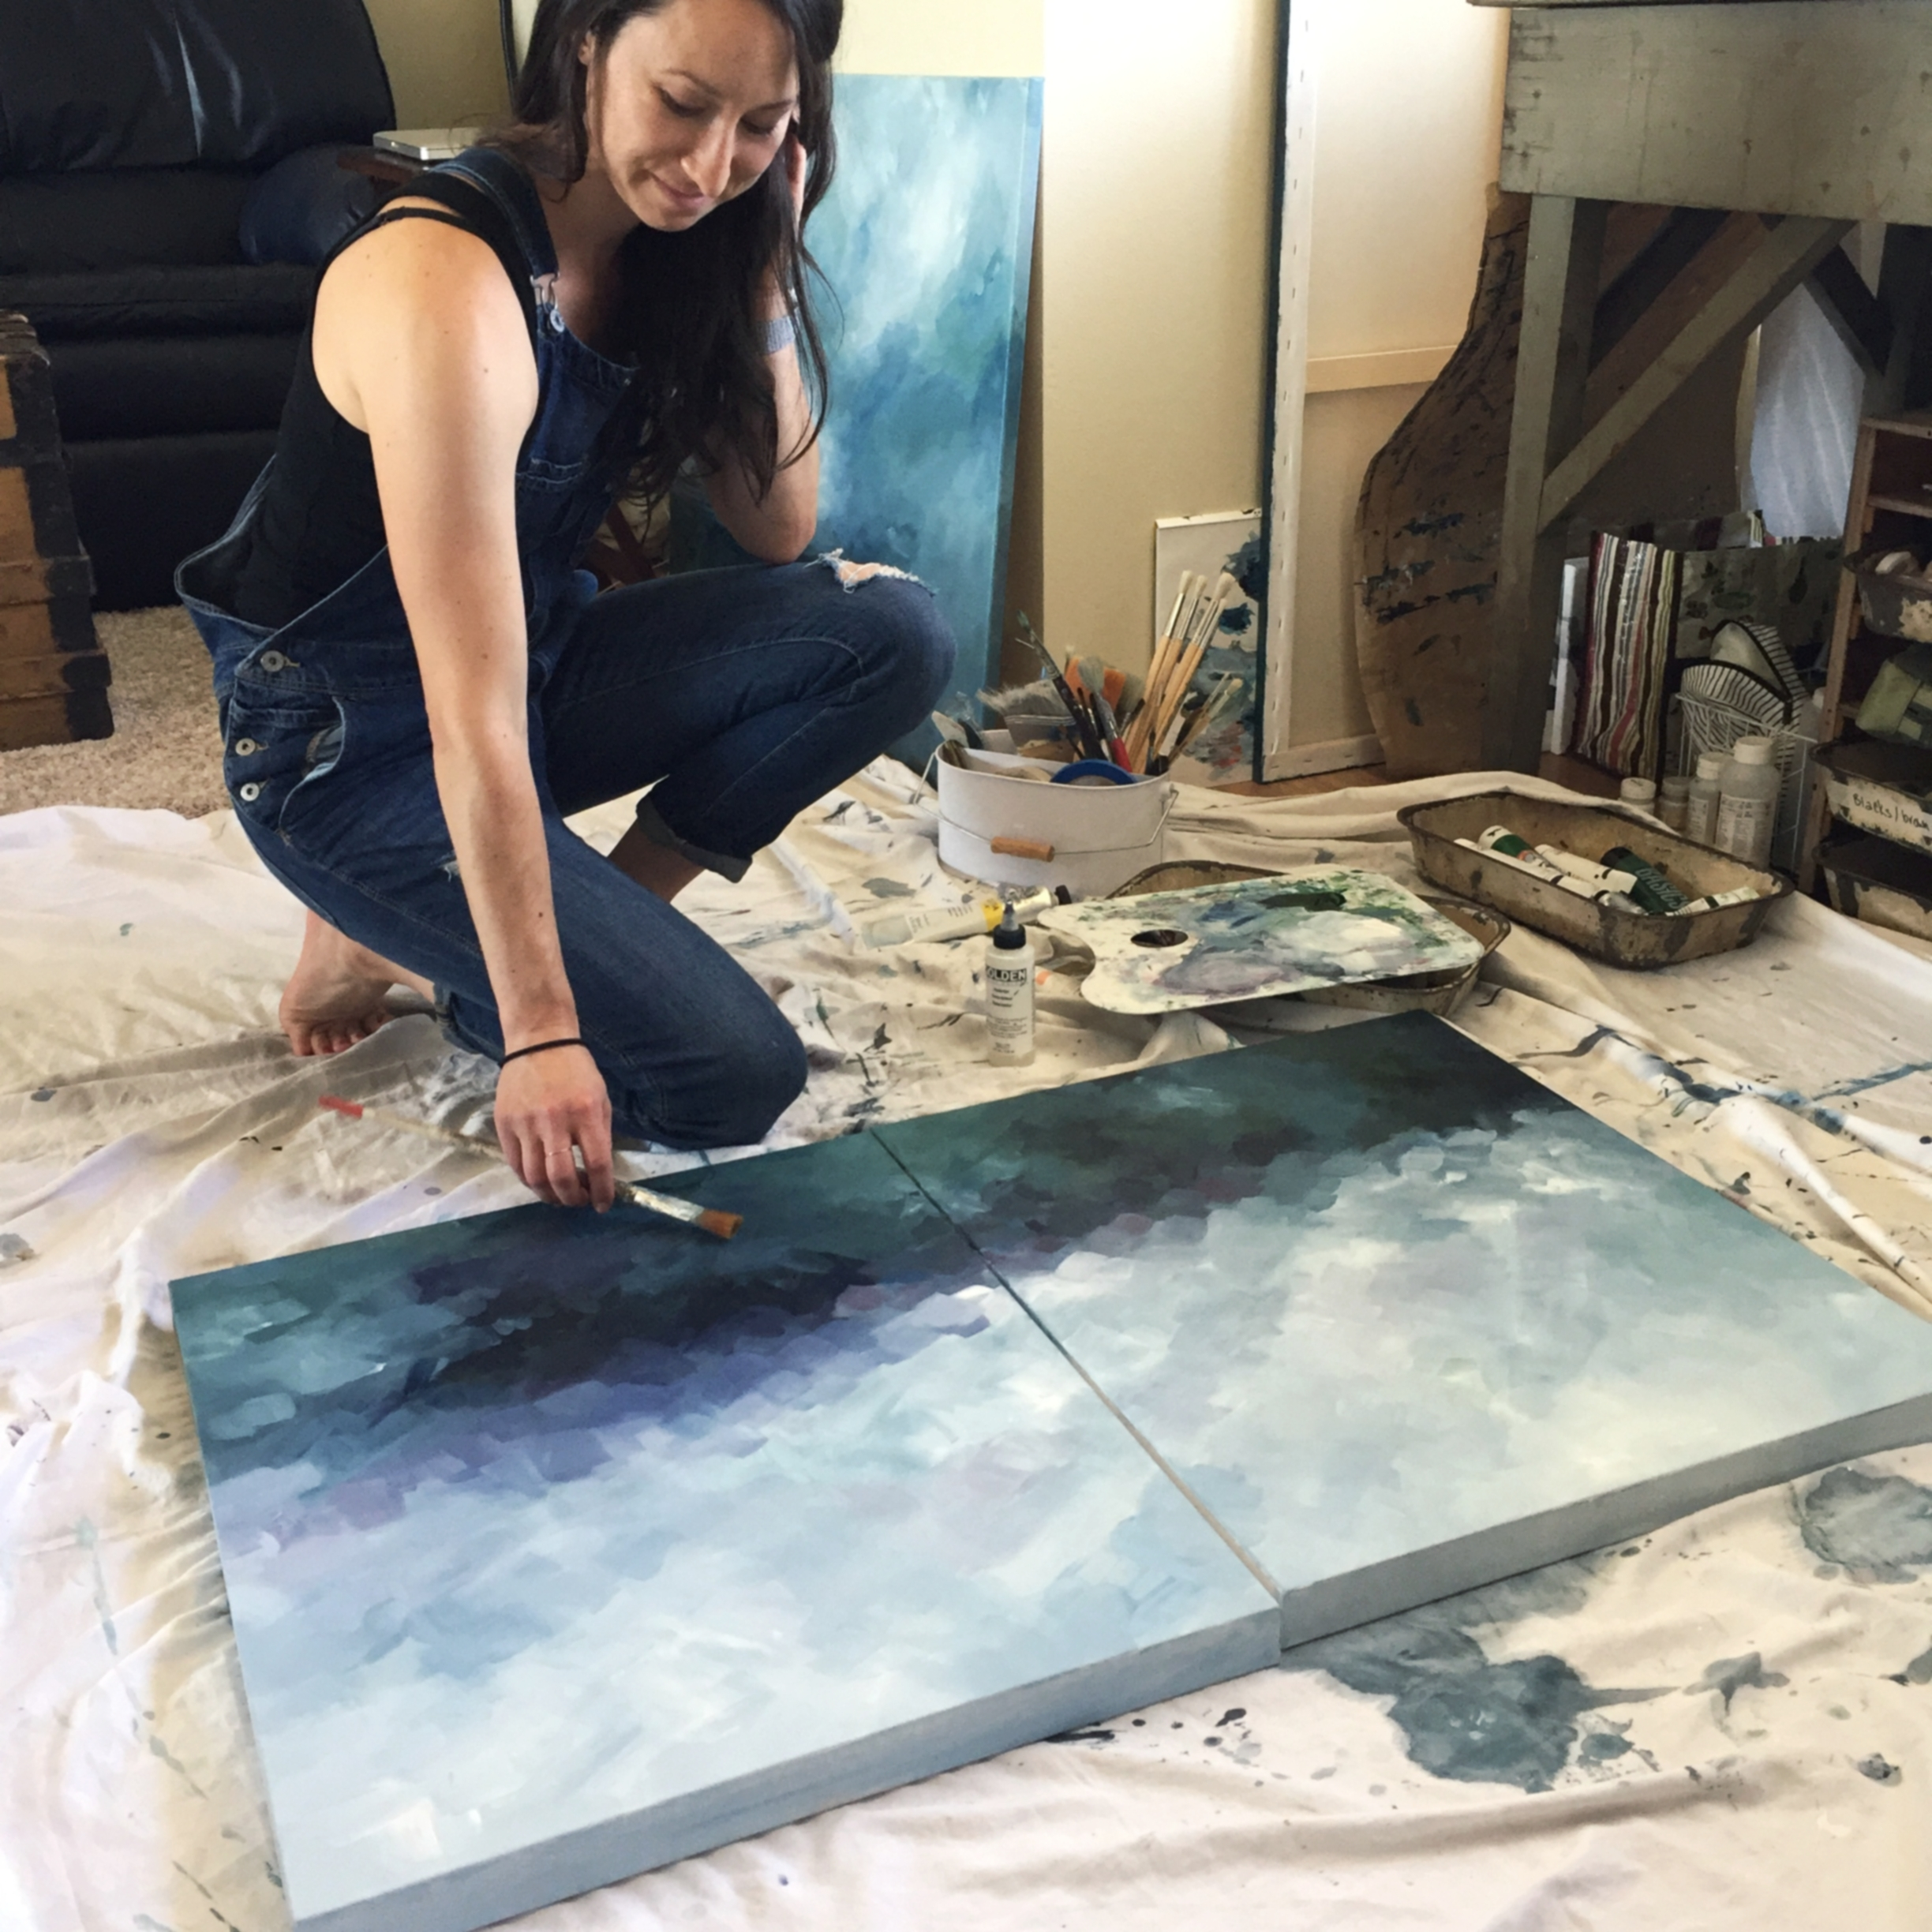 Painting in small spaces